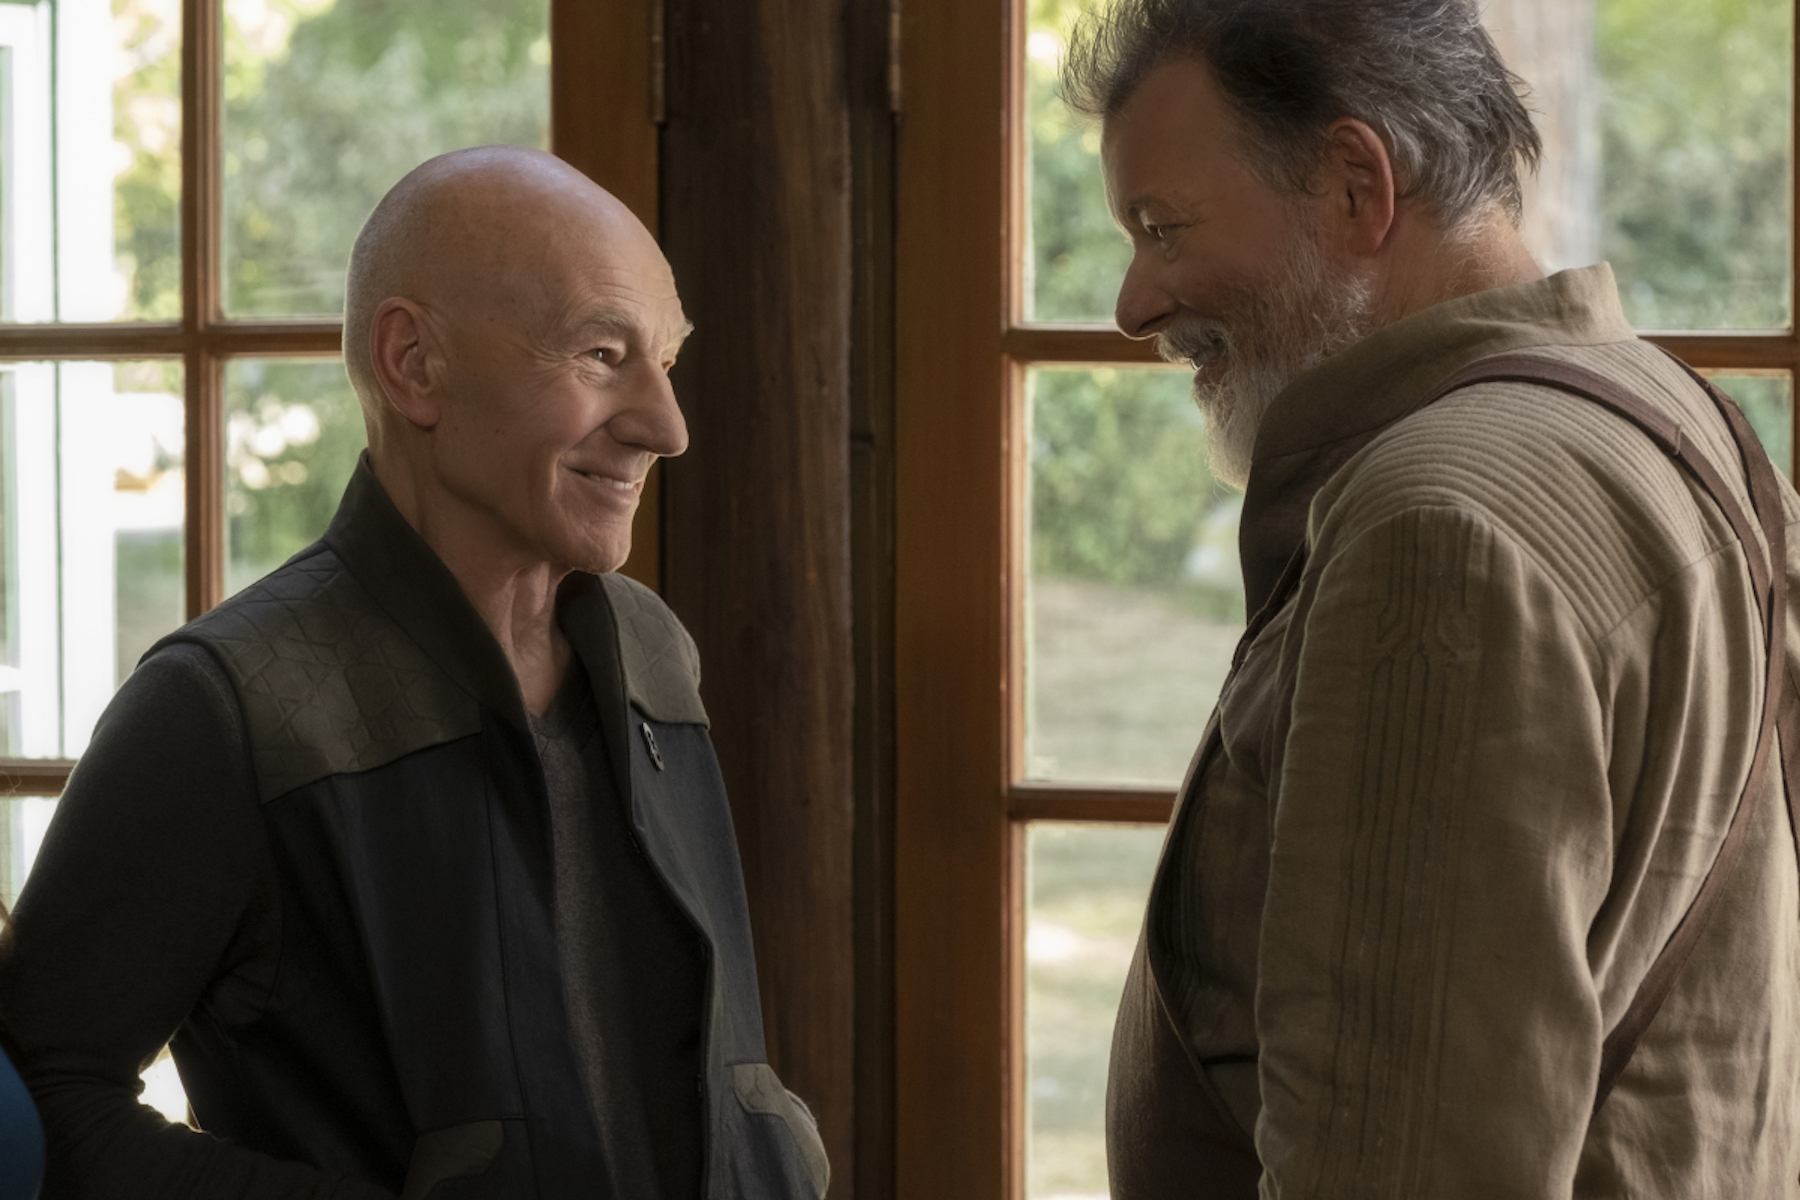 Patrick Stewart as Jean-Luc Picard and Jonathan Frakes as William Riker